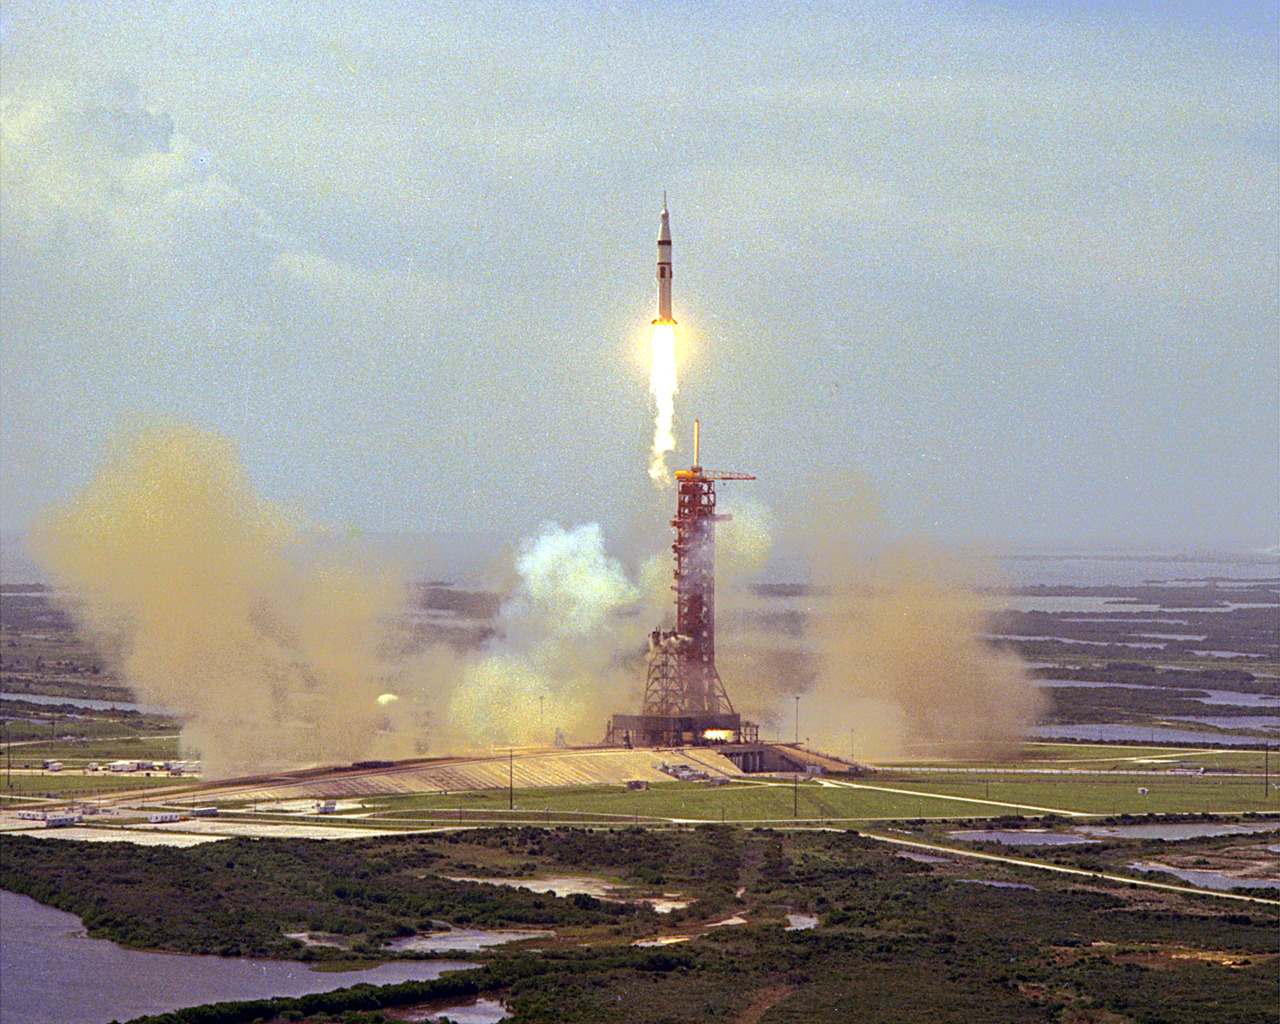 Apollo-Soyuz test project launch.